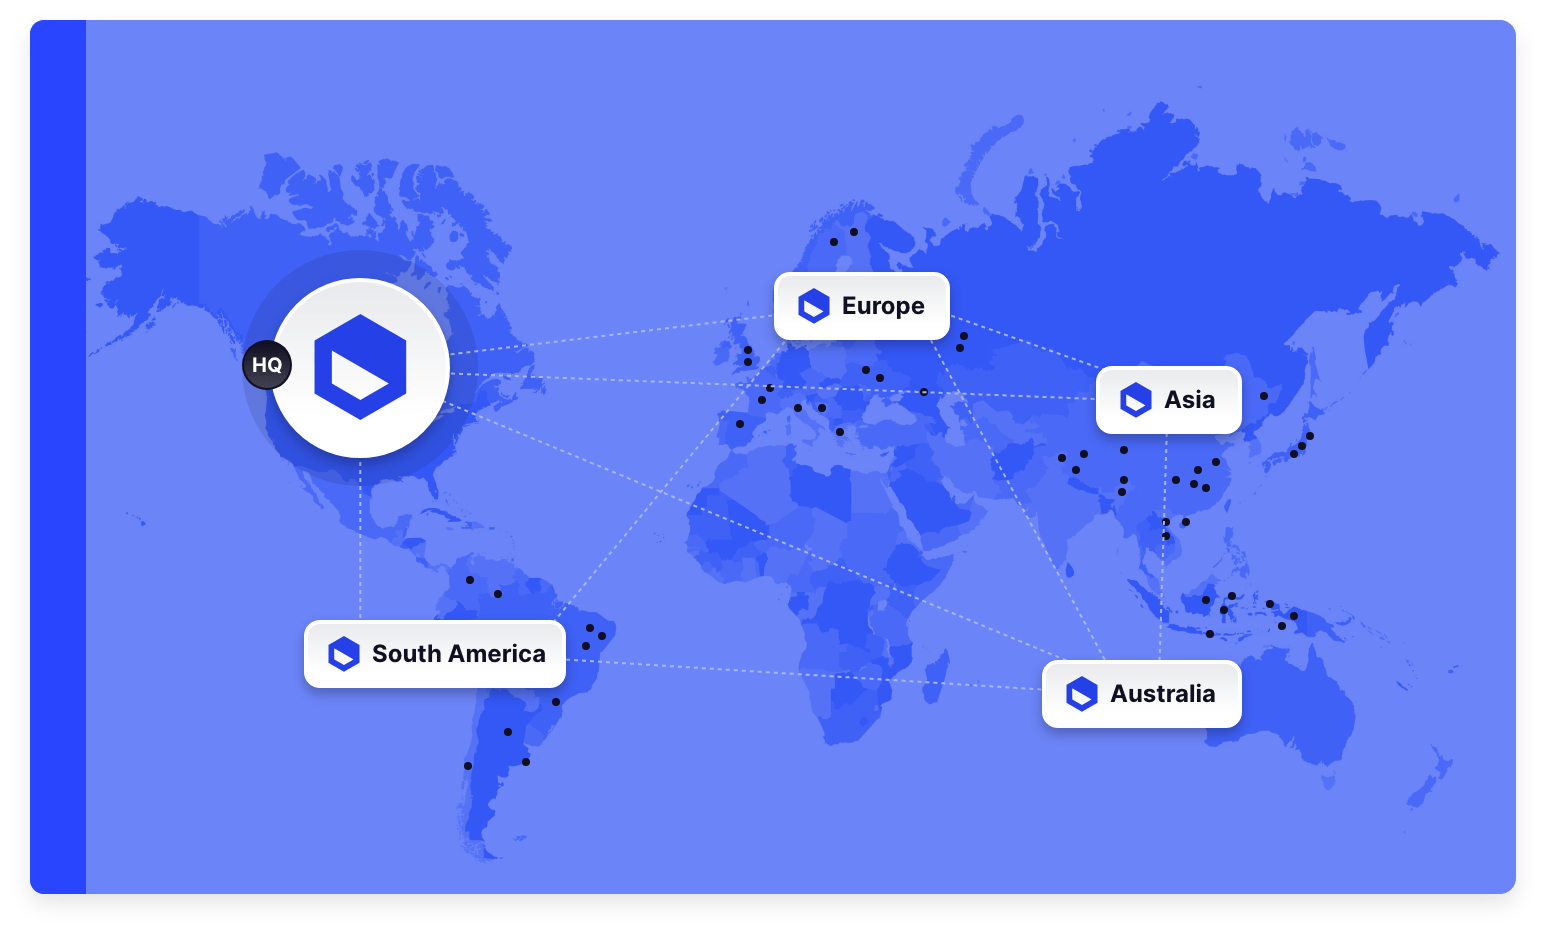 Blue world map with locations highlighted